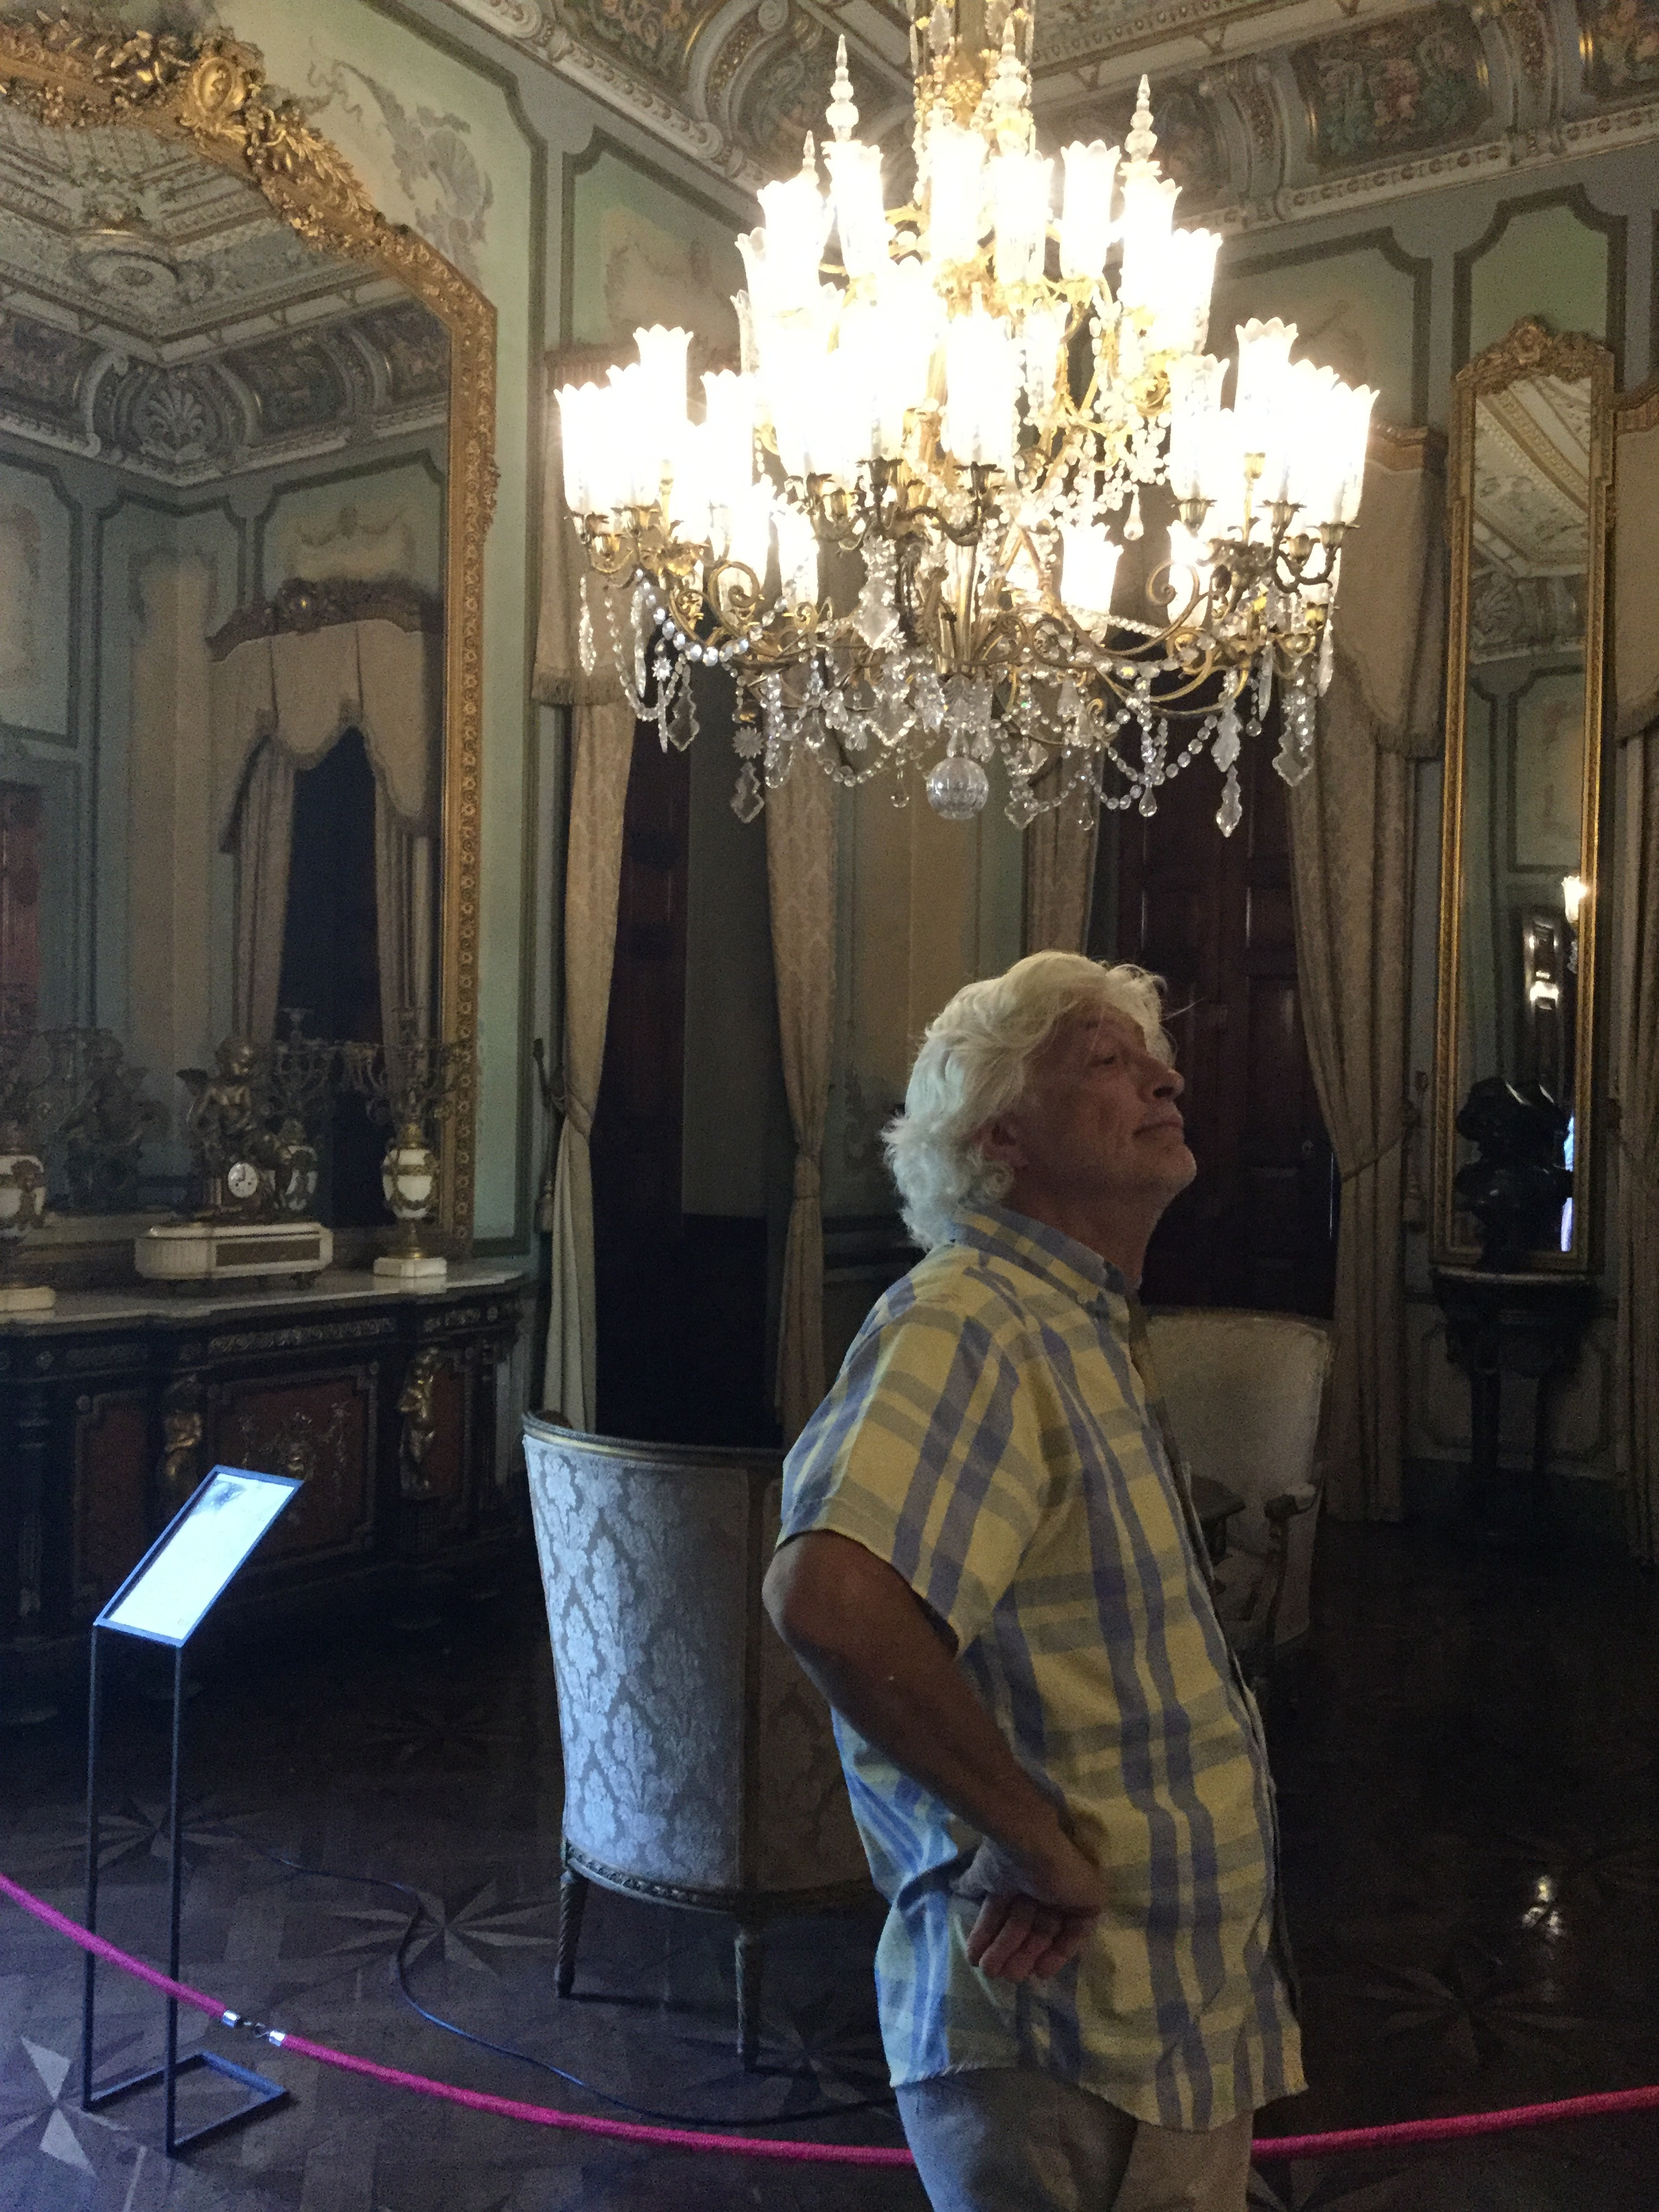 Dante looking presidential in the French (blue) Room.